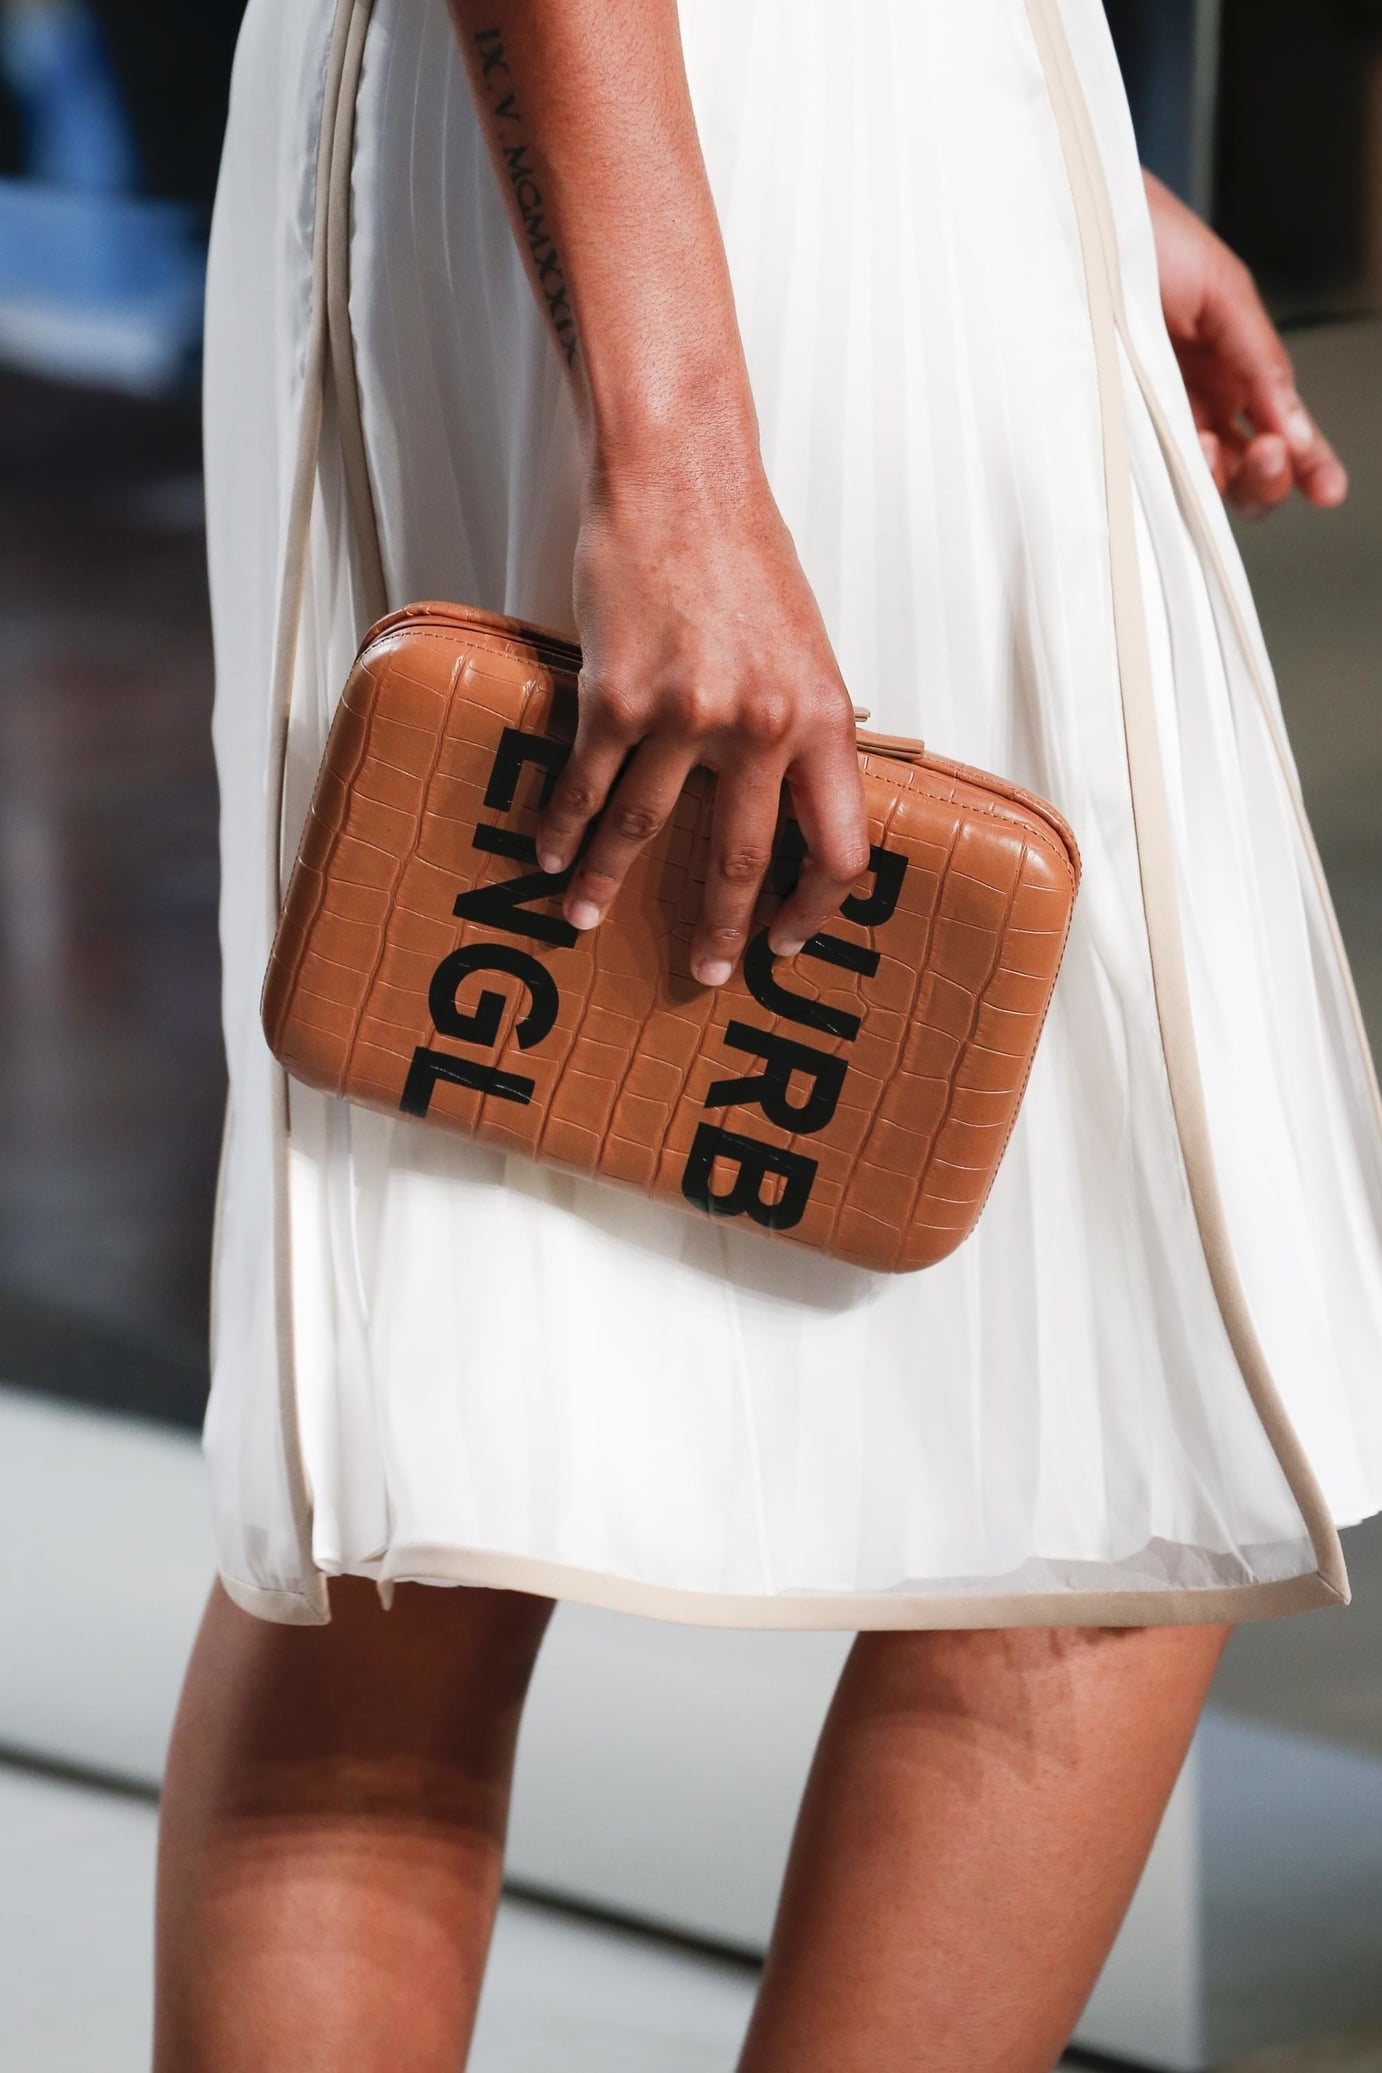 burberry spring  summer 2019 runway bag collection